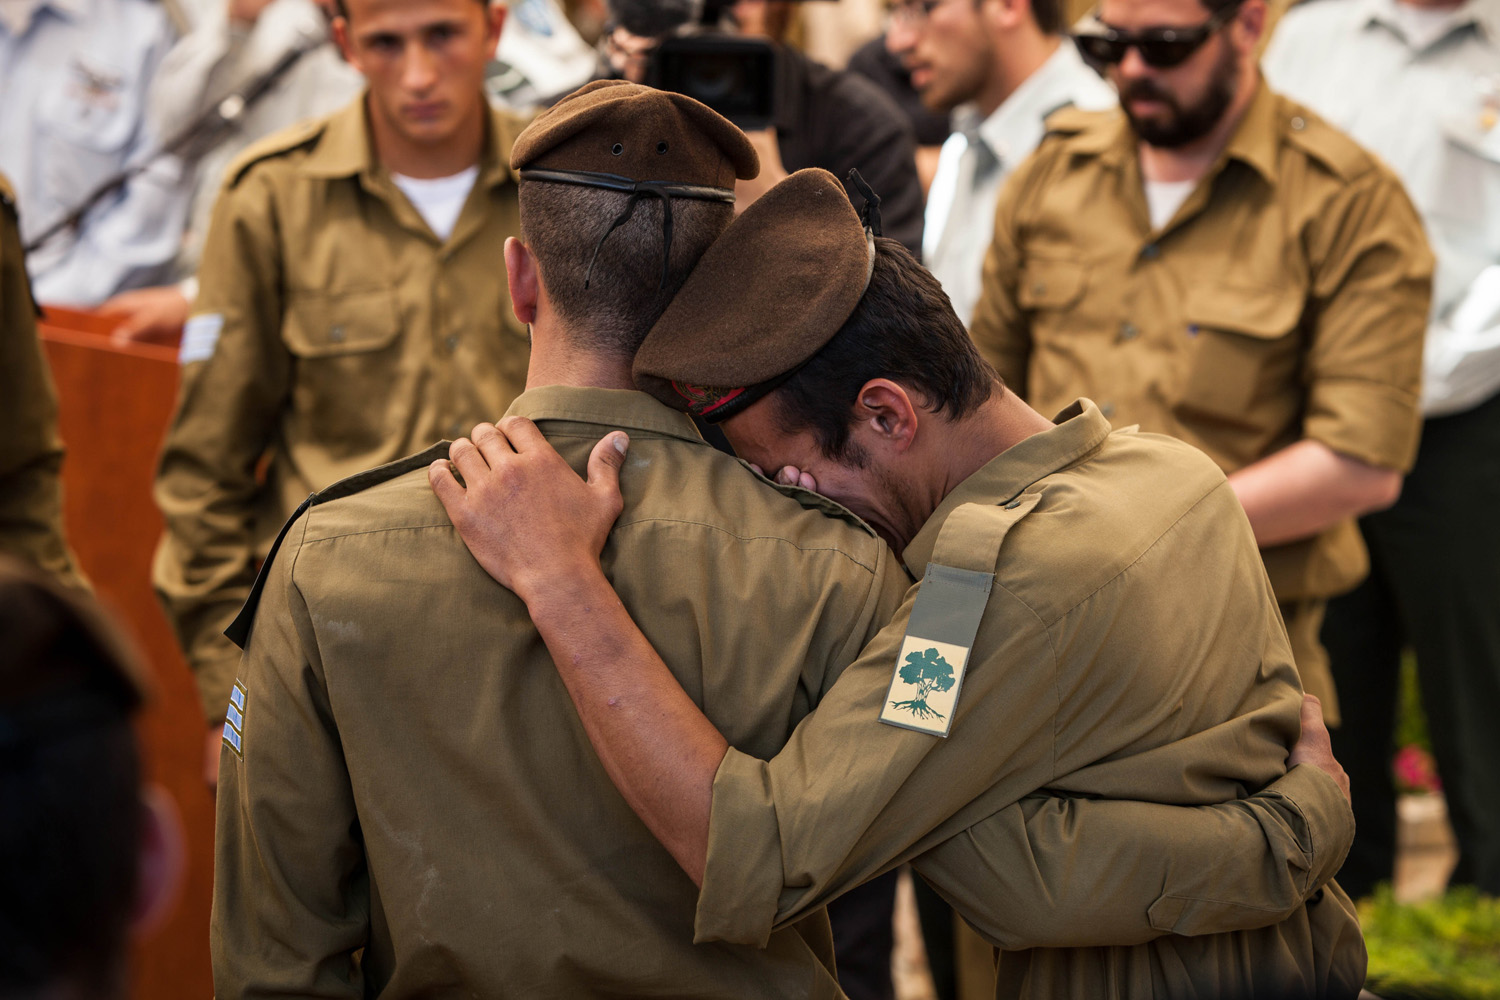 Jul. 23, 2014. Comrades of slain Sgt. Max Steinberg comfort each other during his                               funeral.